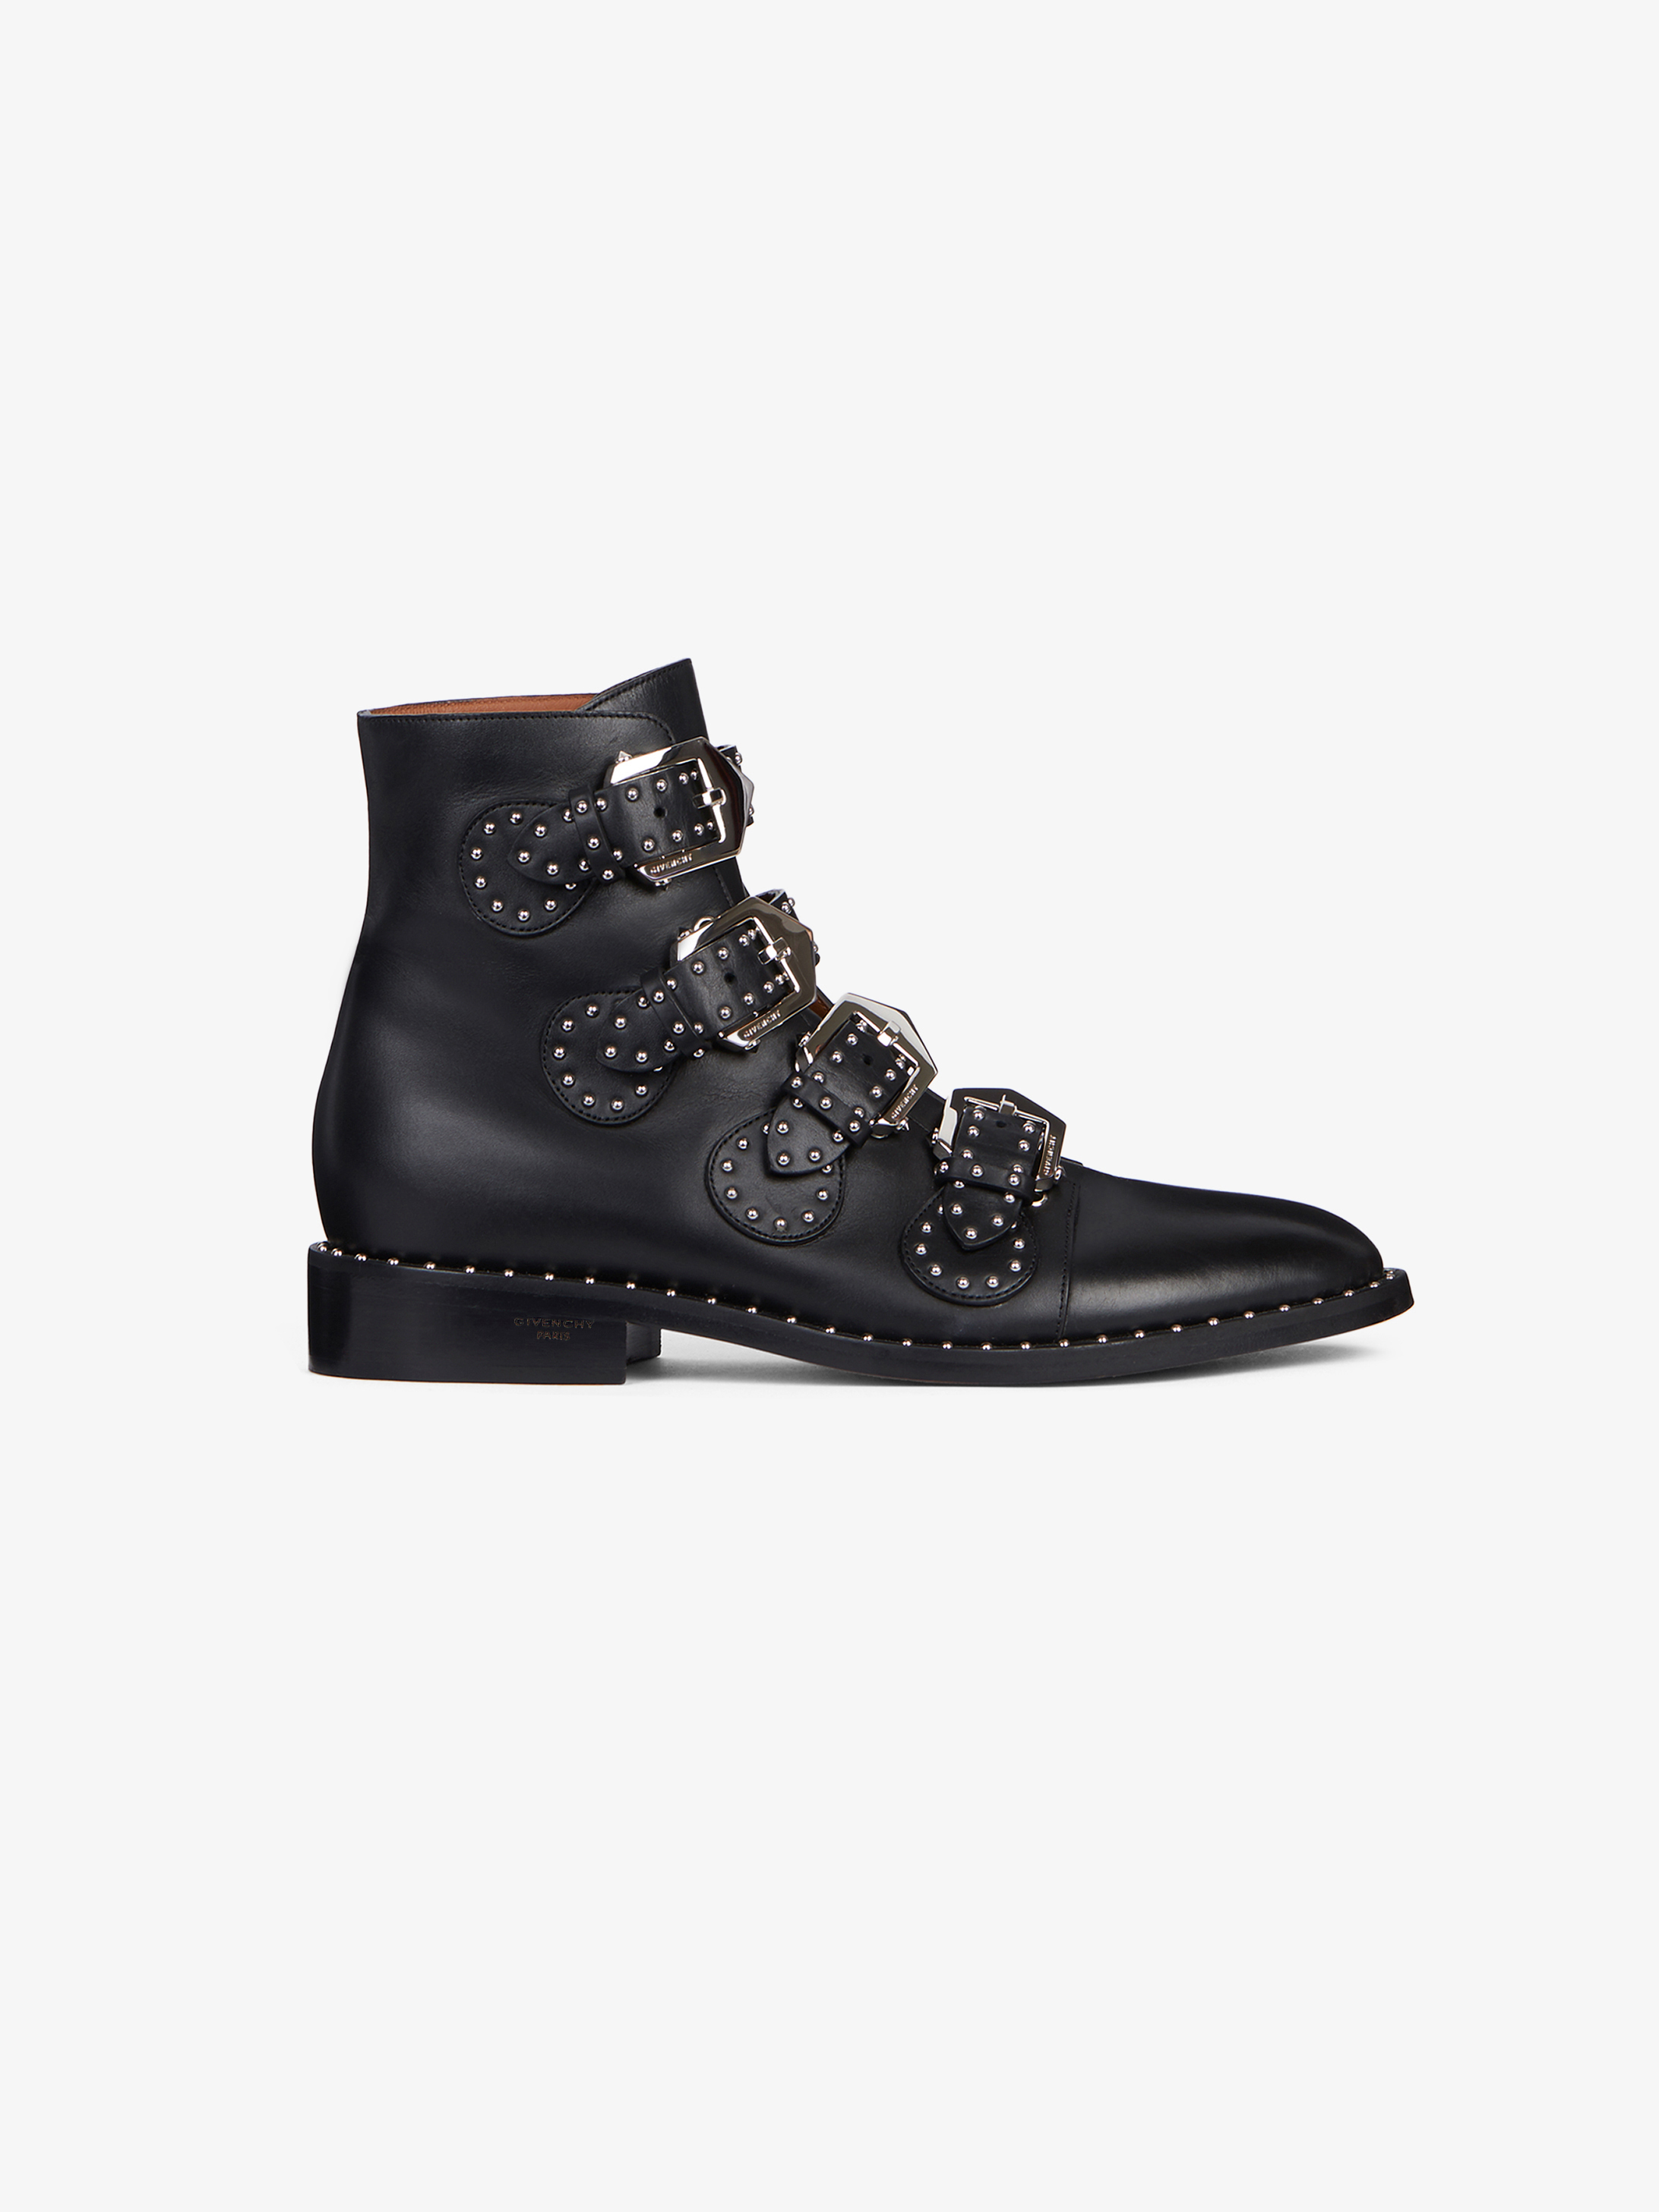 Multi-strap boots in leather with studs